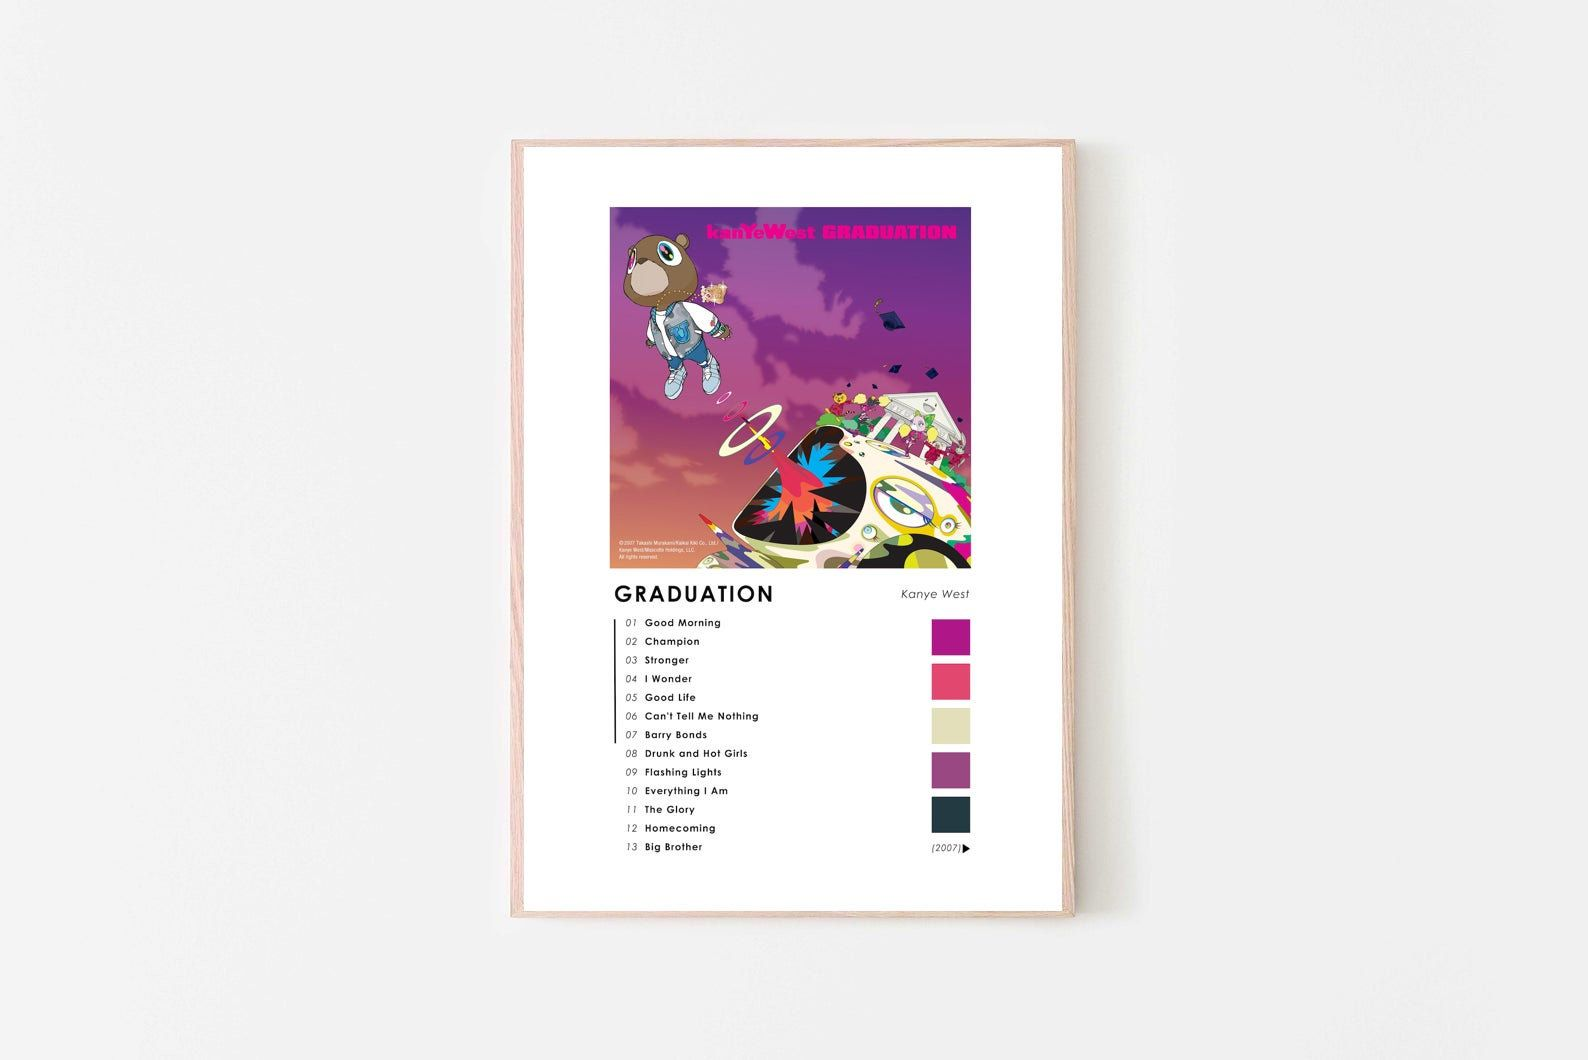 Kanye West Graduation Album Art Home Art Digital Download Etsy In 2020 Album Art Graduation Album Digital Download Etsy